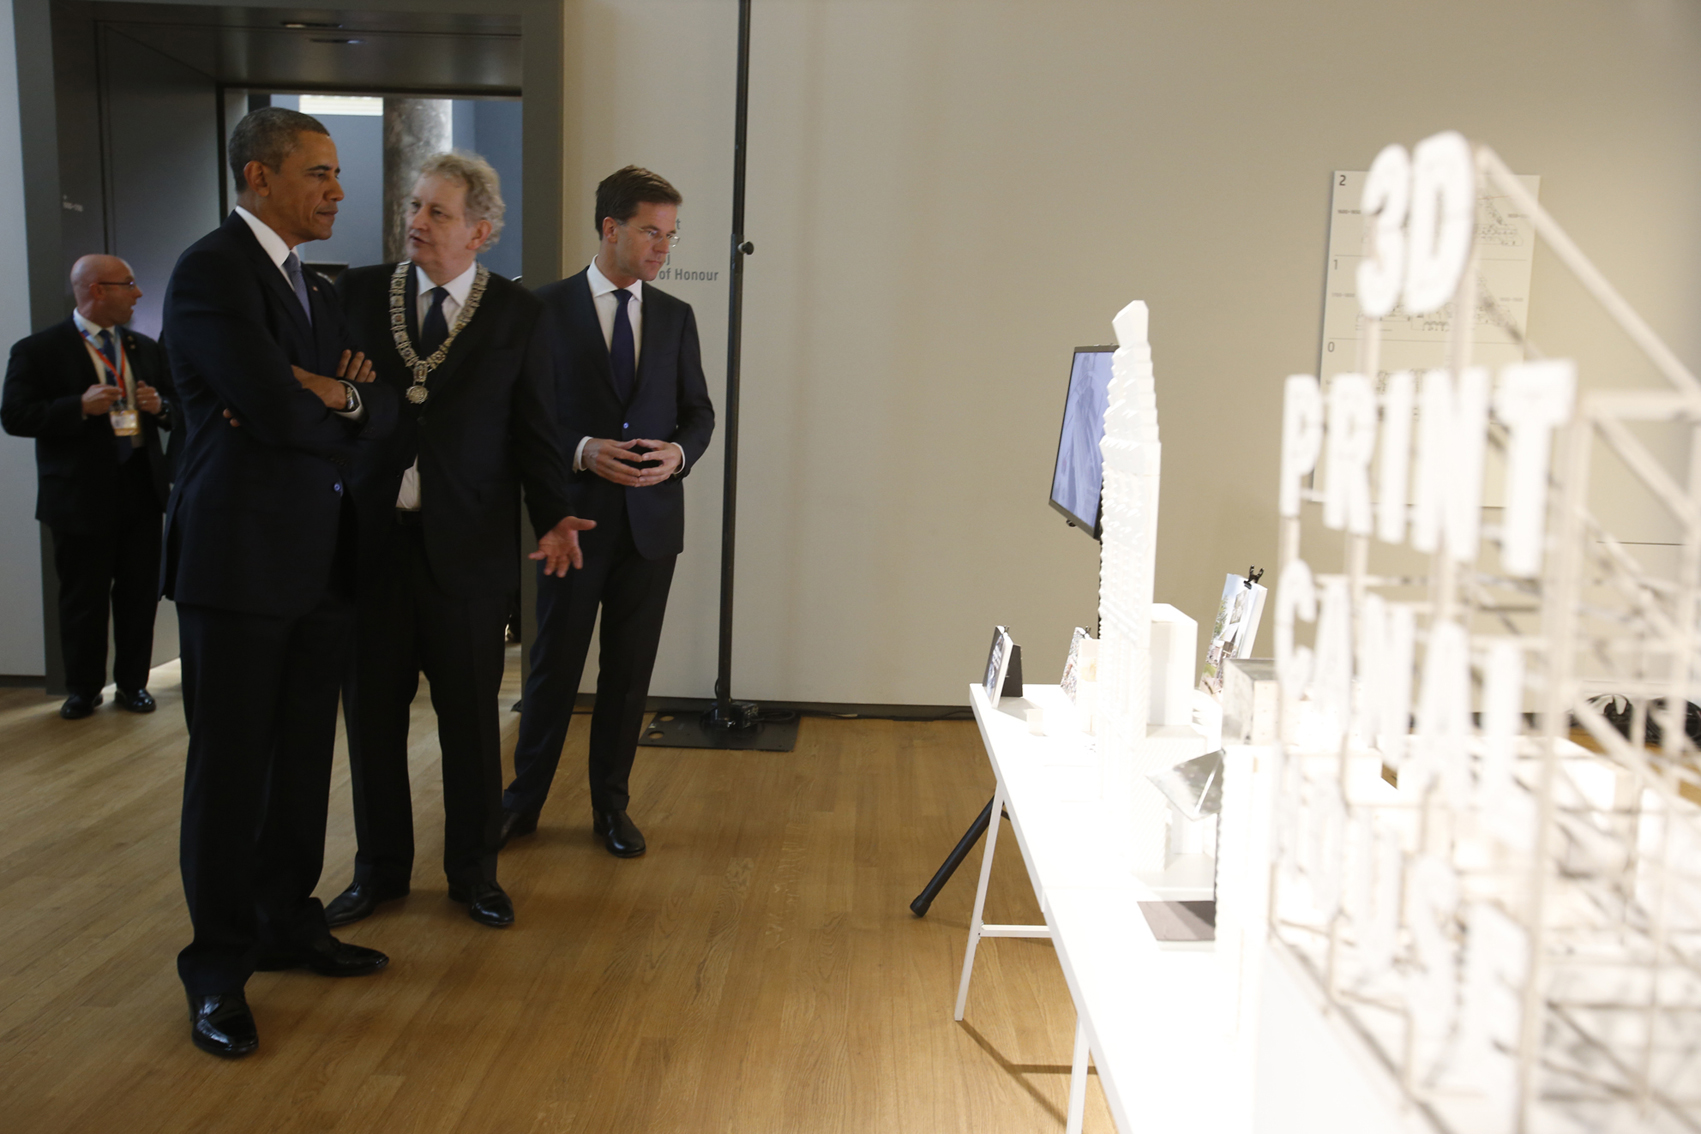 During his visit to the Rijksmuseum in Amsterdam, The 3D Print Canal House was presented to United States' President Barack Obama by the Mayor of Amsterdam Eberhard van der Laan.  http://3dprintcanalhouse.com